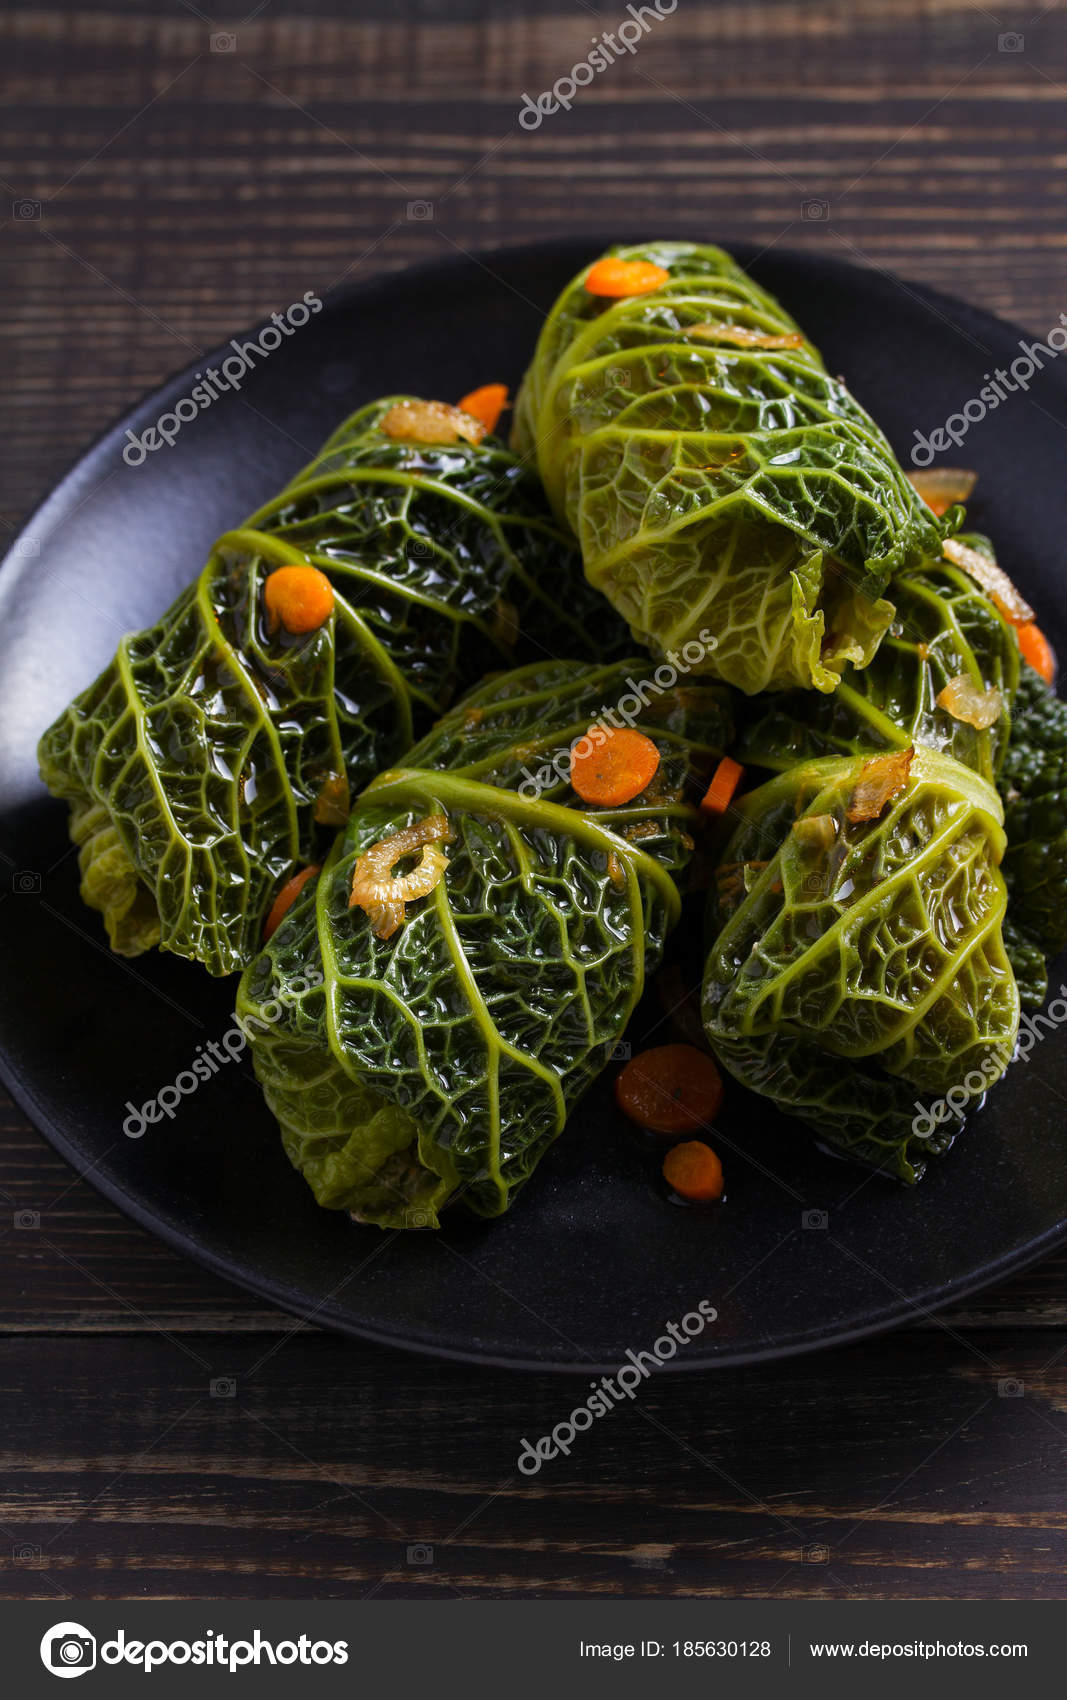 Savoy Cabbage Rolls Meat Rice Vegetables Stuffed Savoy Cabbage Leaves Stock Photo C Skylinefree 185630128